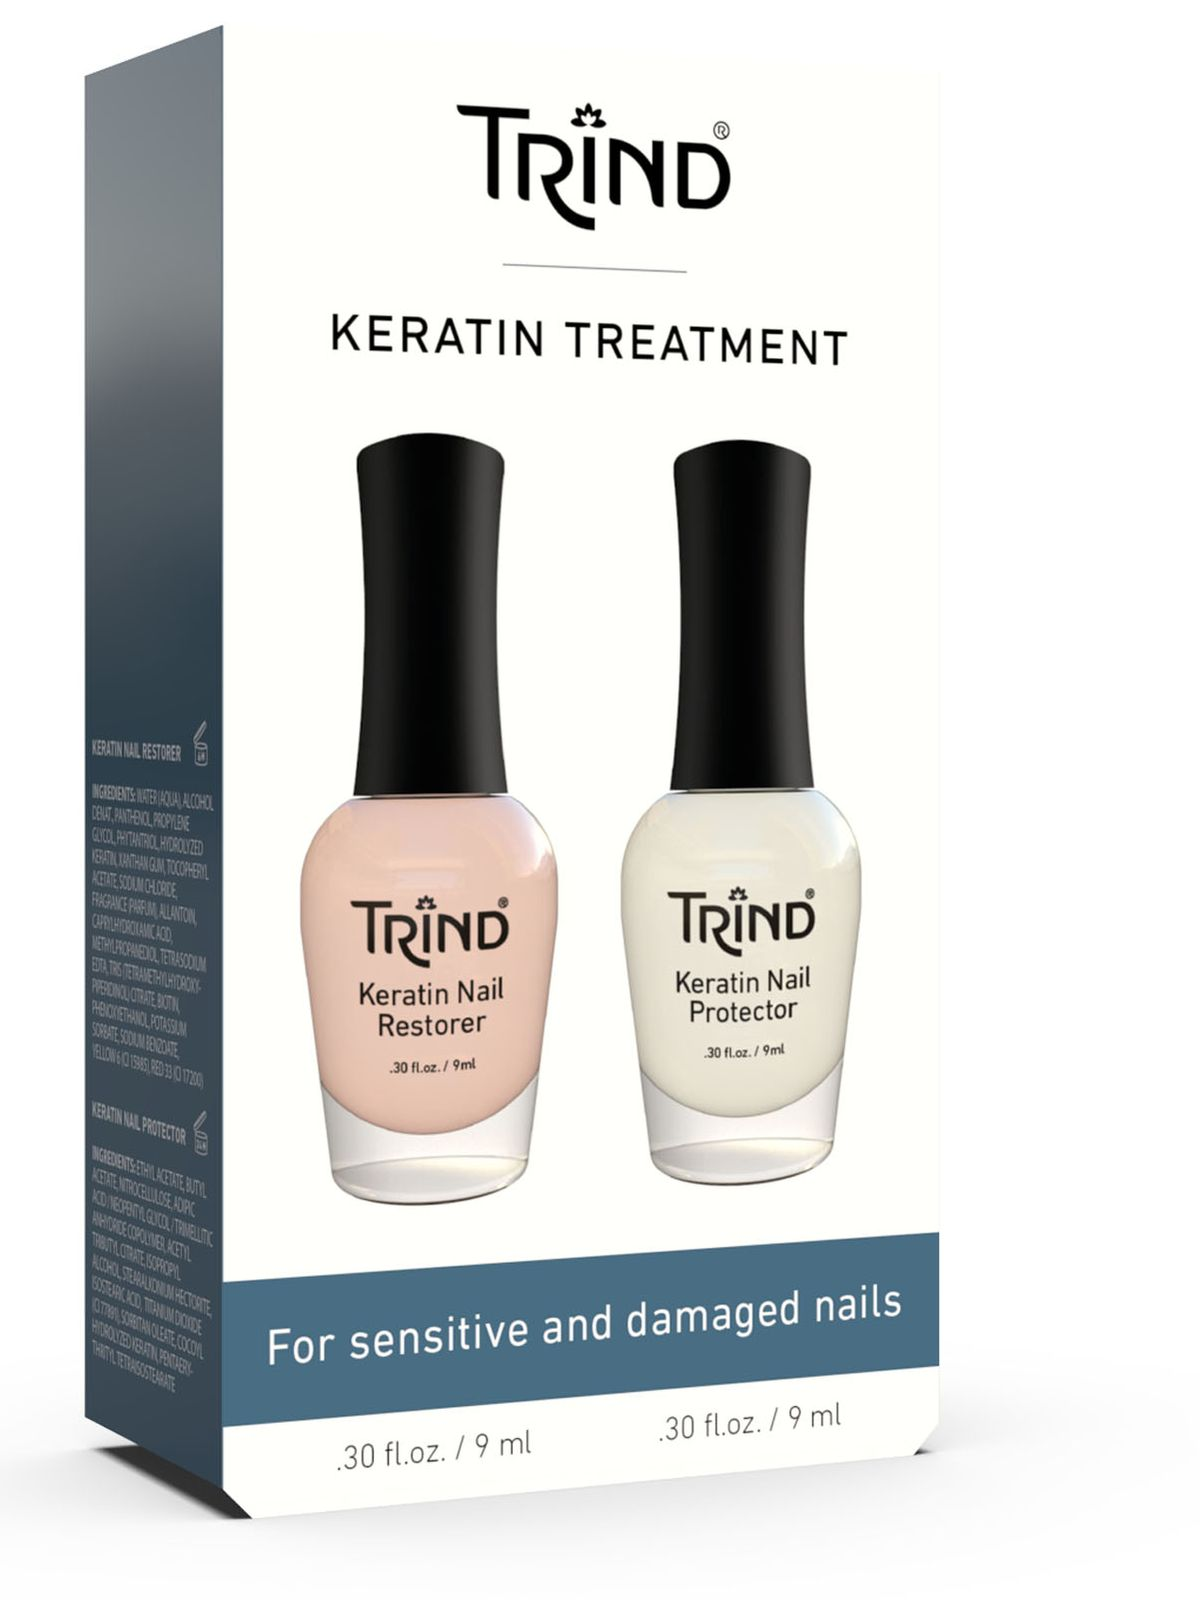 TRIND Набор для ногтей (Keratin Restorer + Keratin Protecor) / Keratin Treatment Set